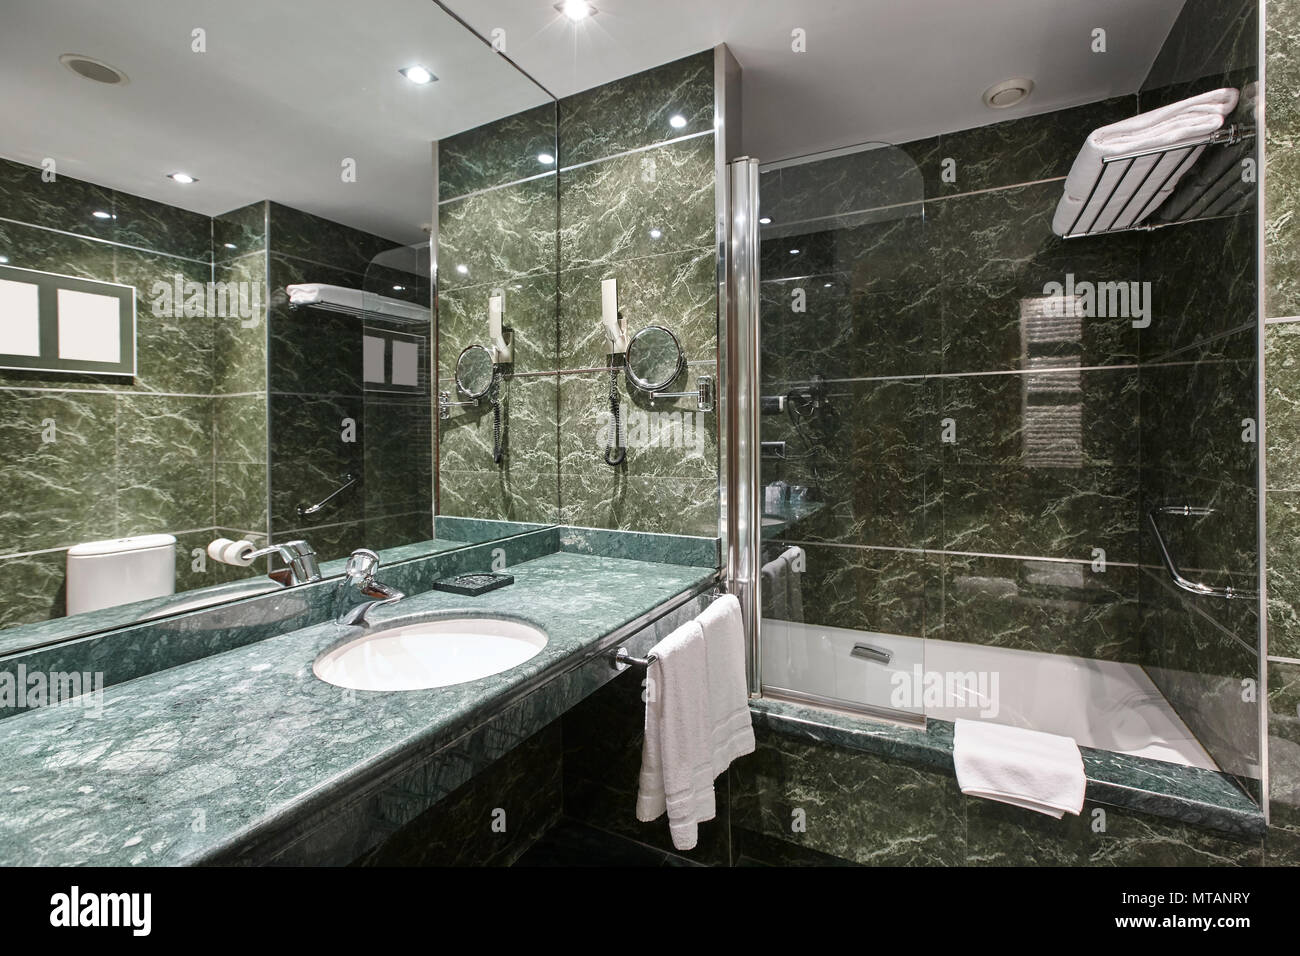 Luxury bathroom in green marble decoraton hotel home interior horizontal